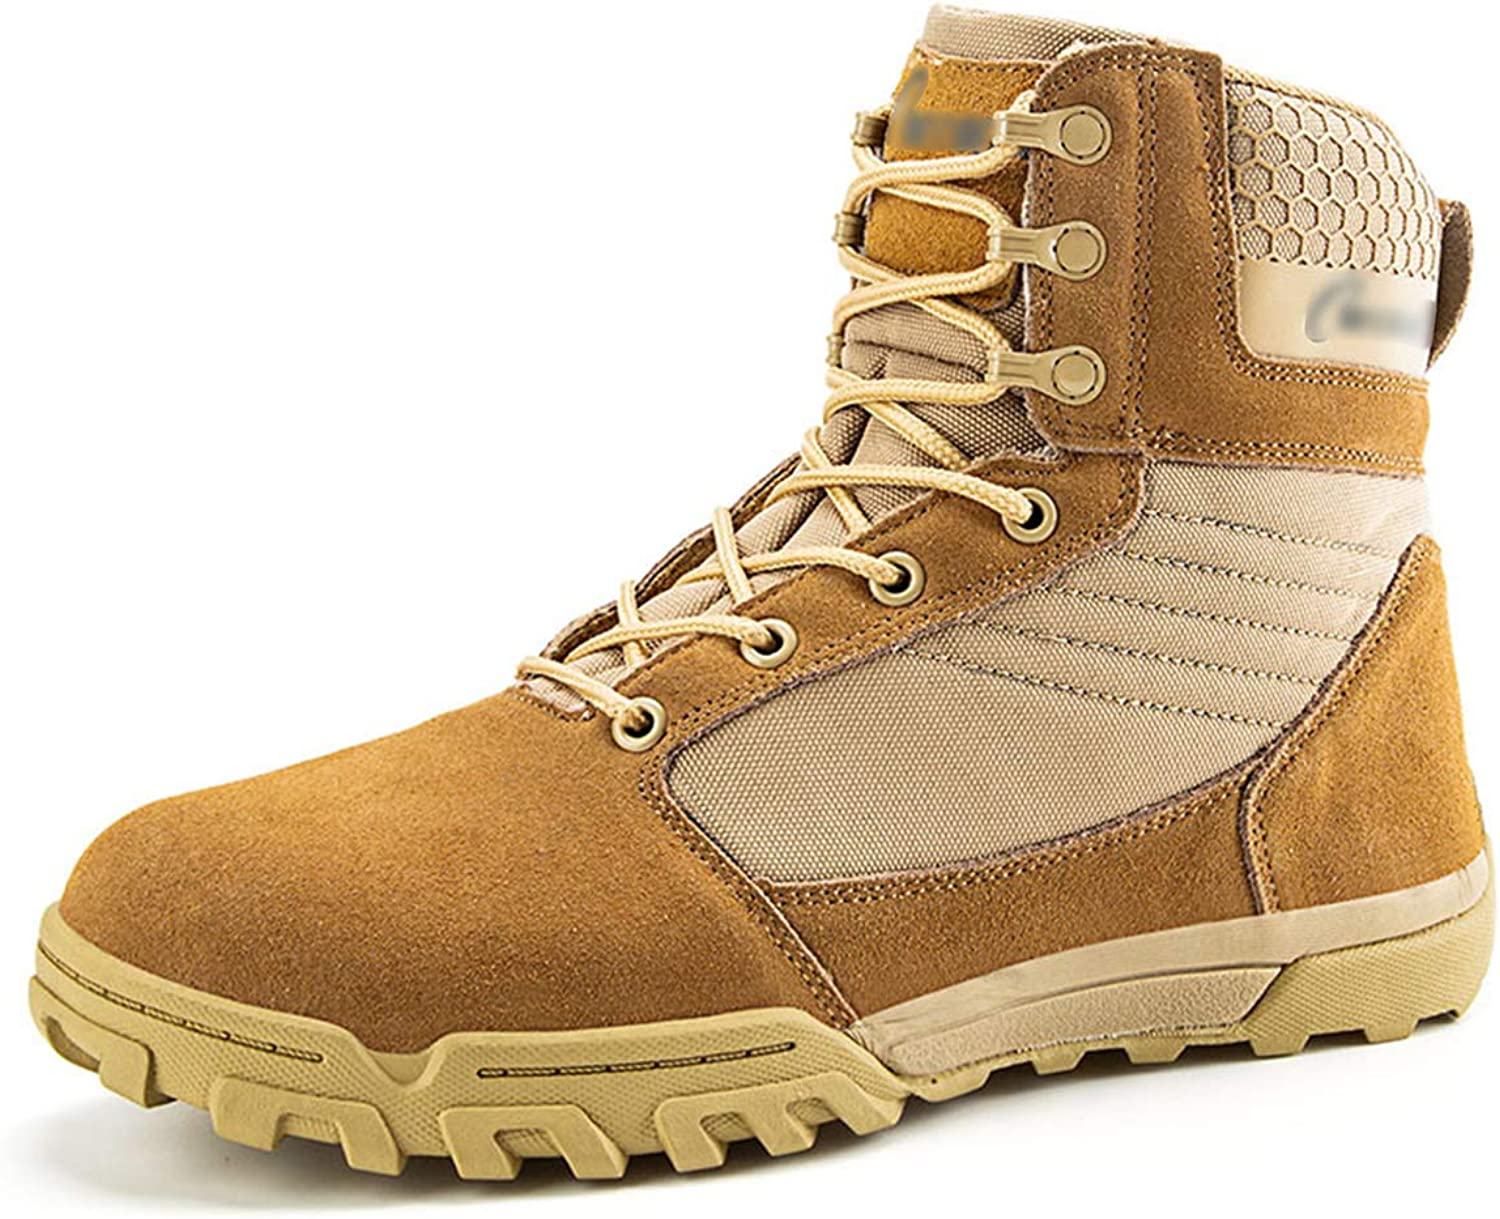 HNGLXQ Combat Boots G-27 Leather Side Zip Army Tactical Boots Delta Military Work Army shoes Safety Ankle Boots Breathable Commando Outdoor Desert Tactical Military Patrol Boots,Beige-EU43